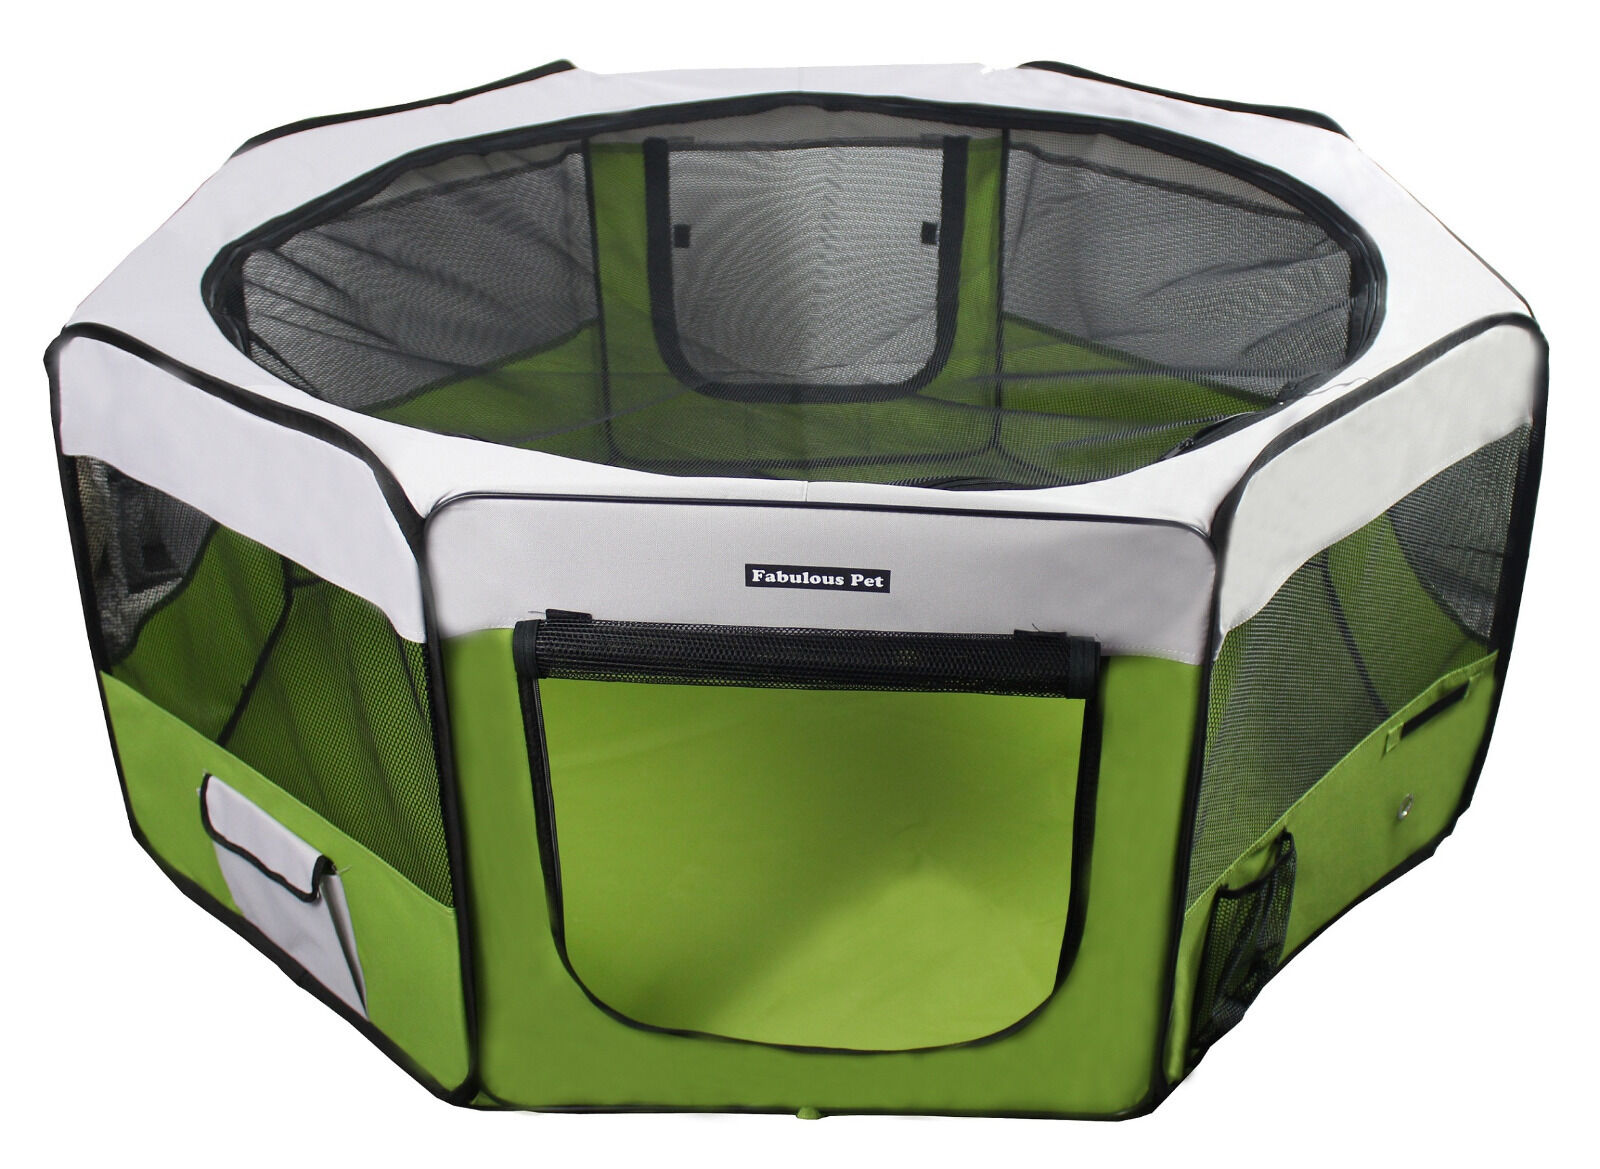 55 Portable Puppy Pet Dog Soft Tent Playpen Folding Crate Pen New  Lime Green